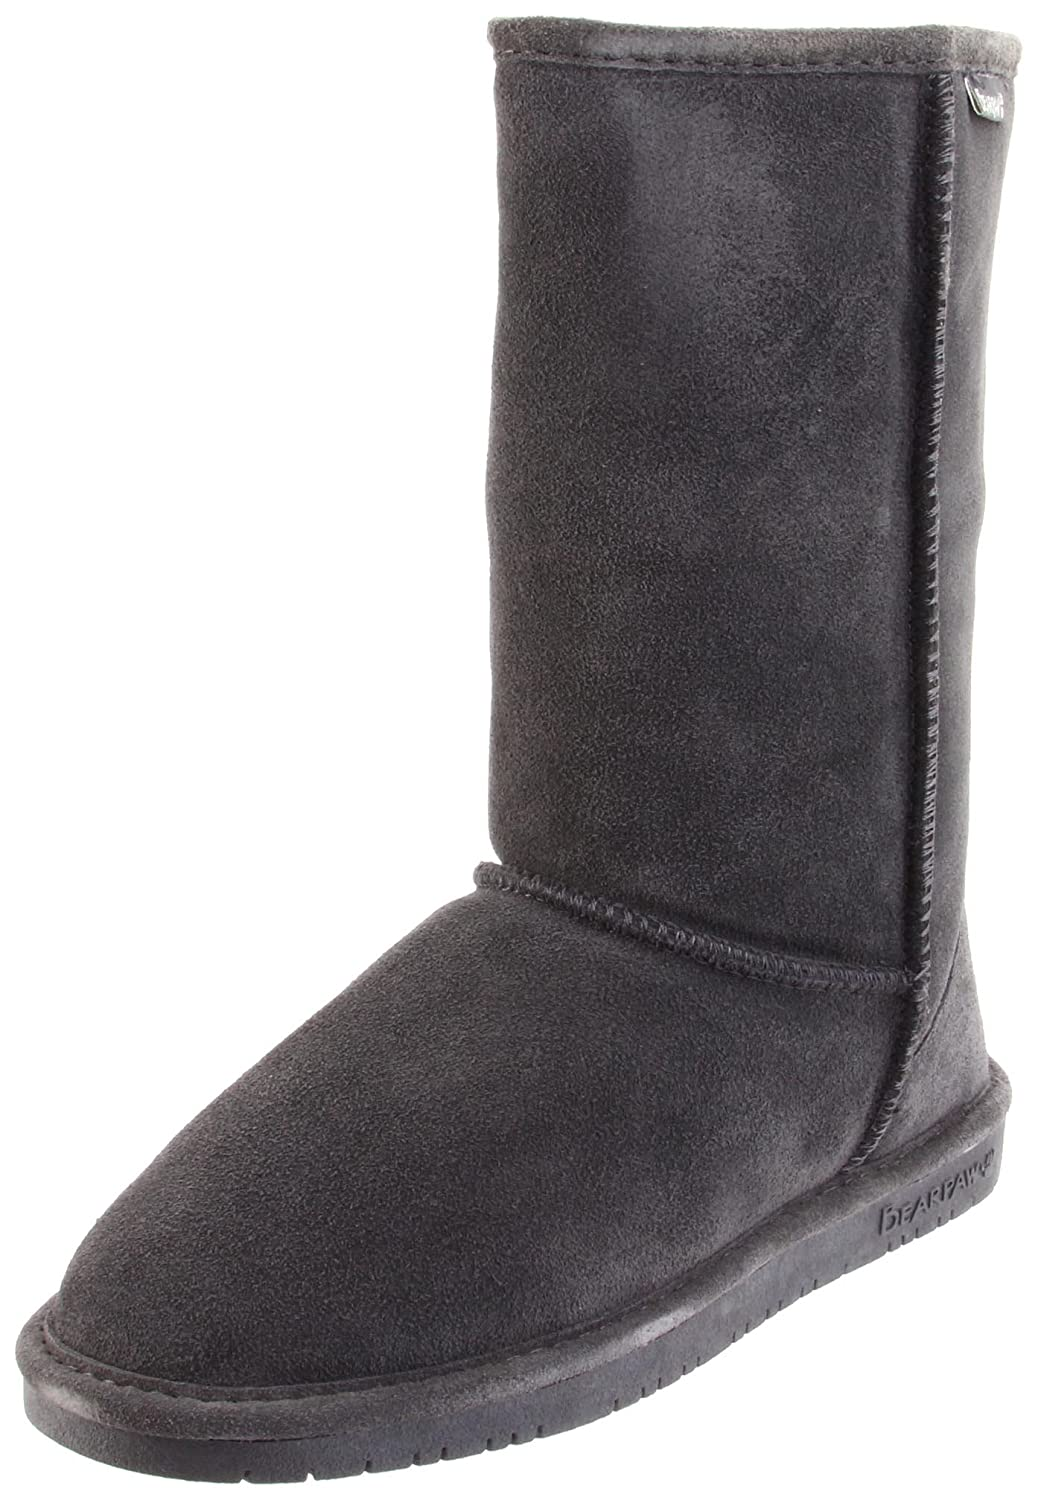 Bearpaw Emma Tall, Botas con forro Mujer Gris (Charcoal 030)